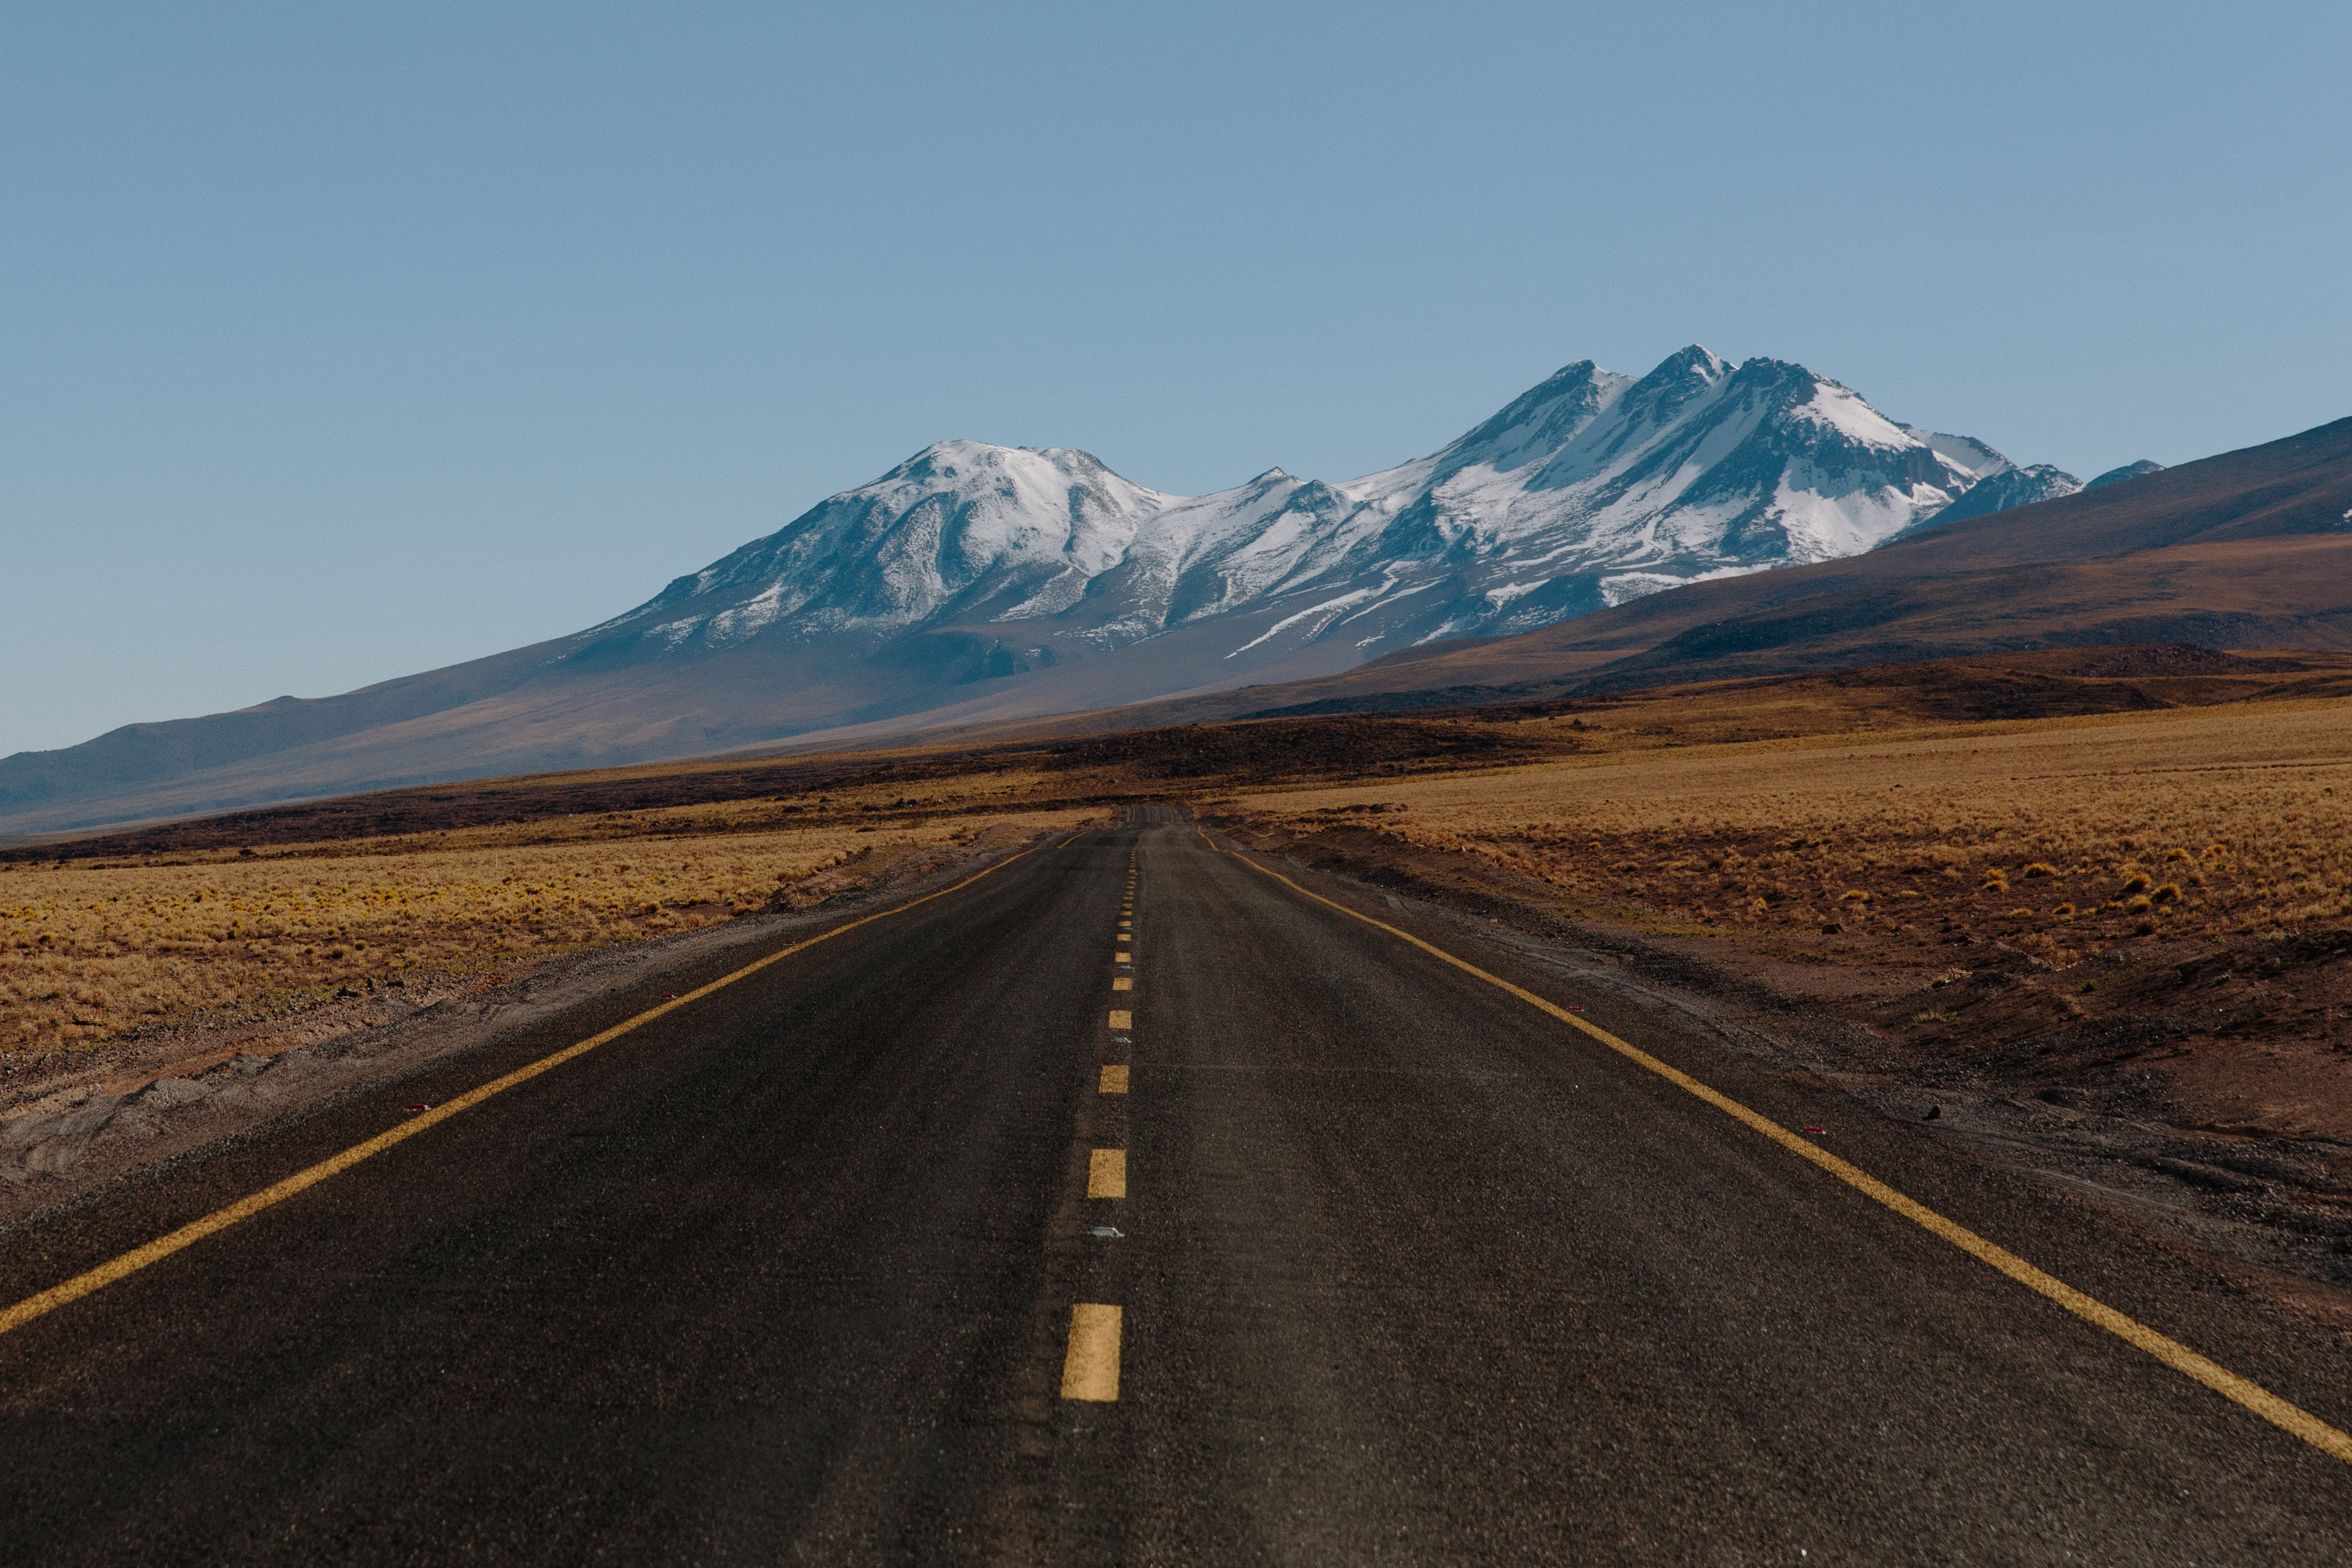 A highway surrounded by an arid field leading to a snowy mountain in San Pedro de Atacama